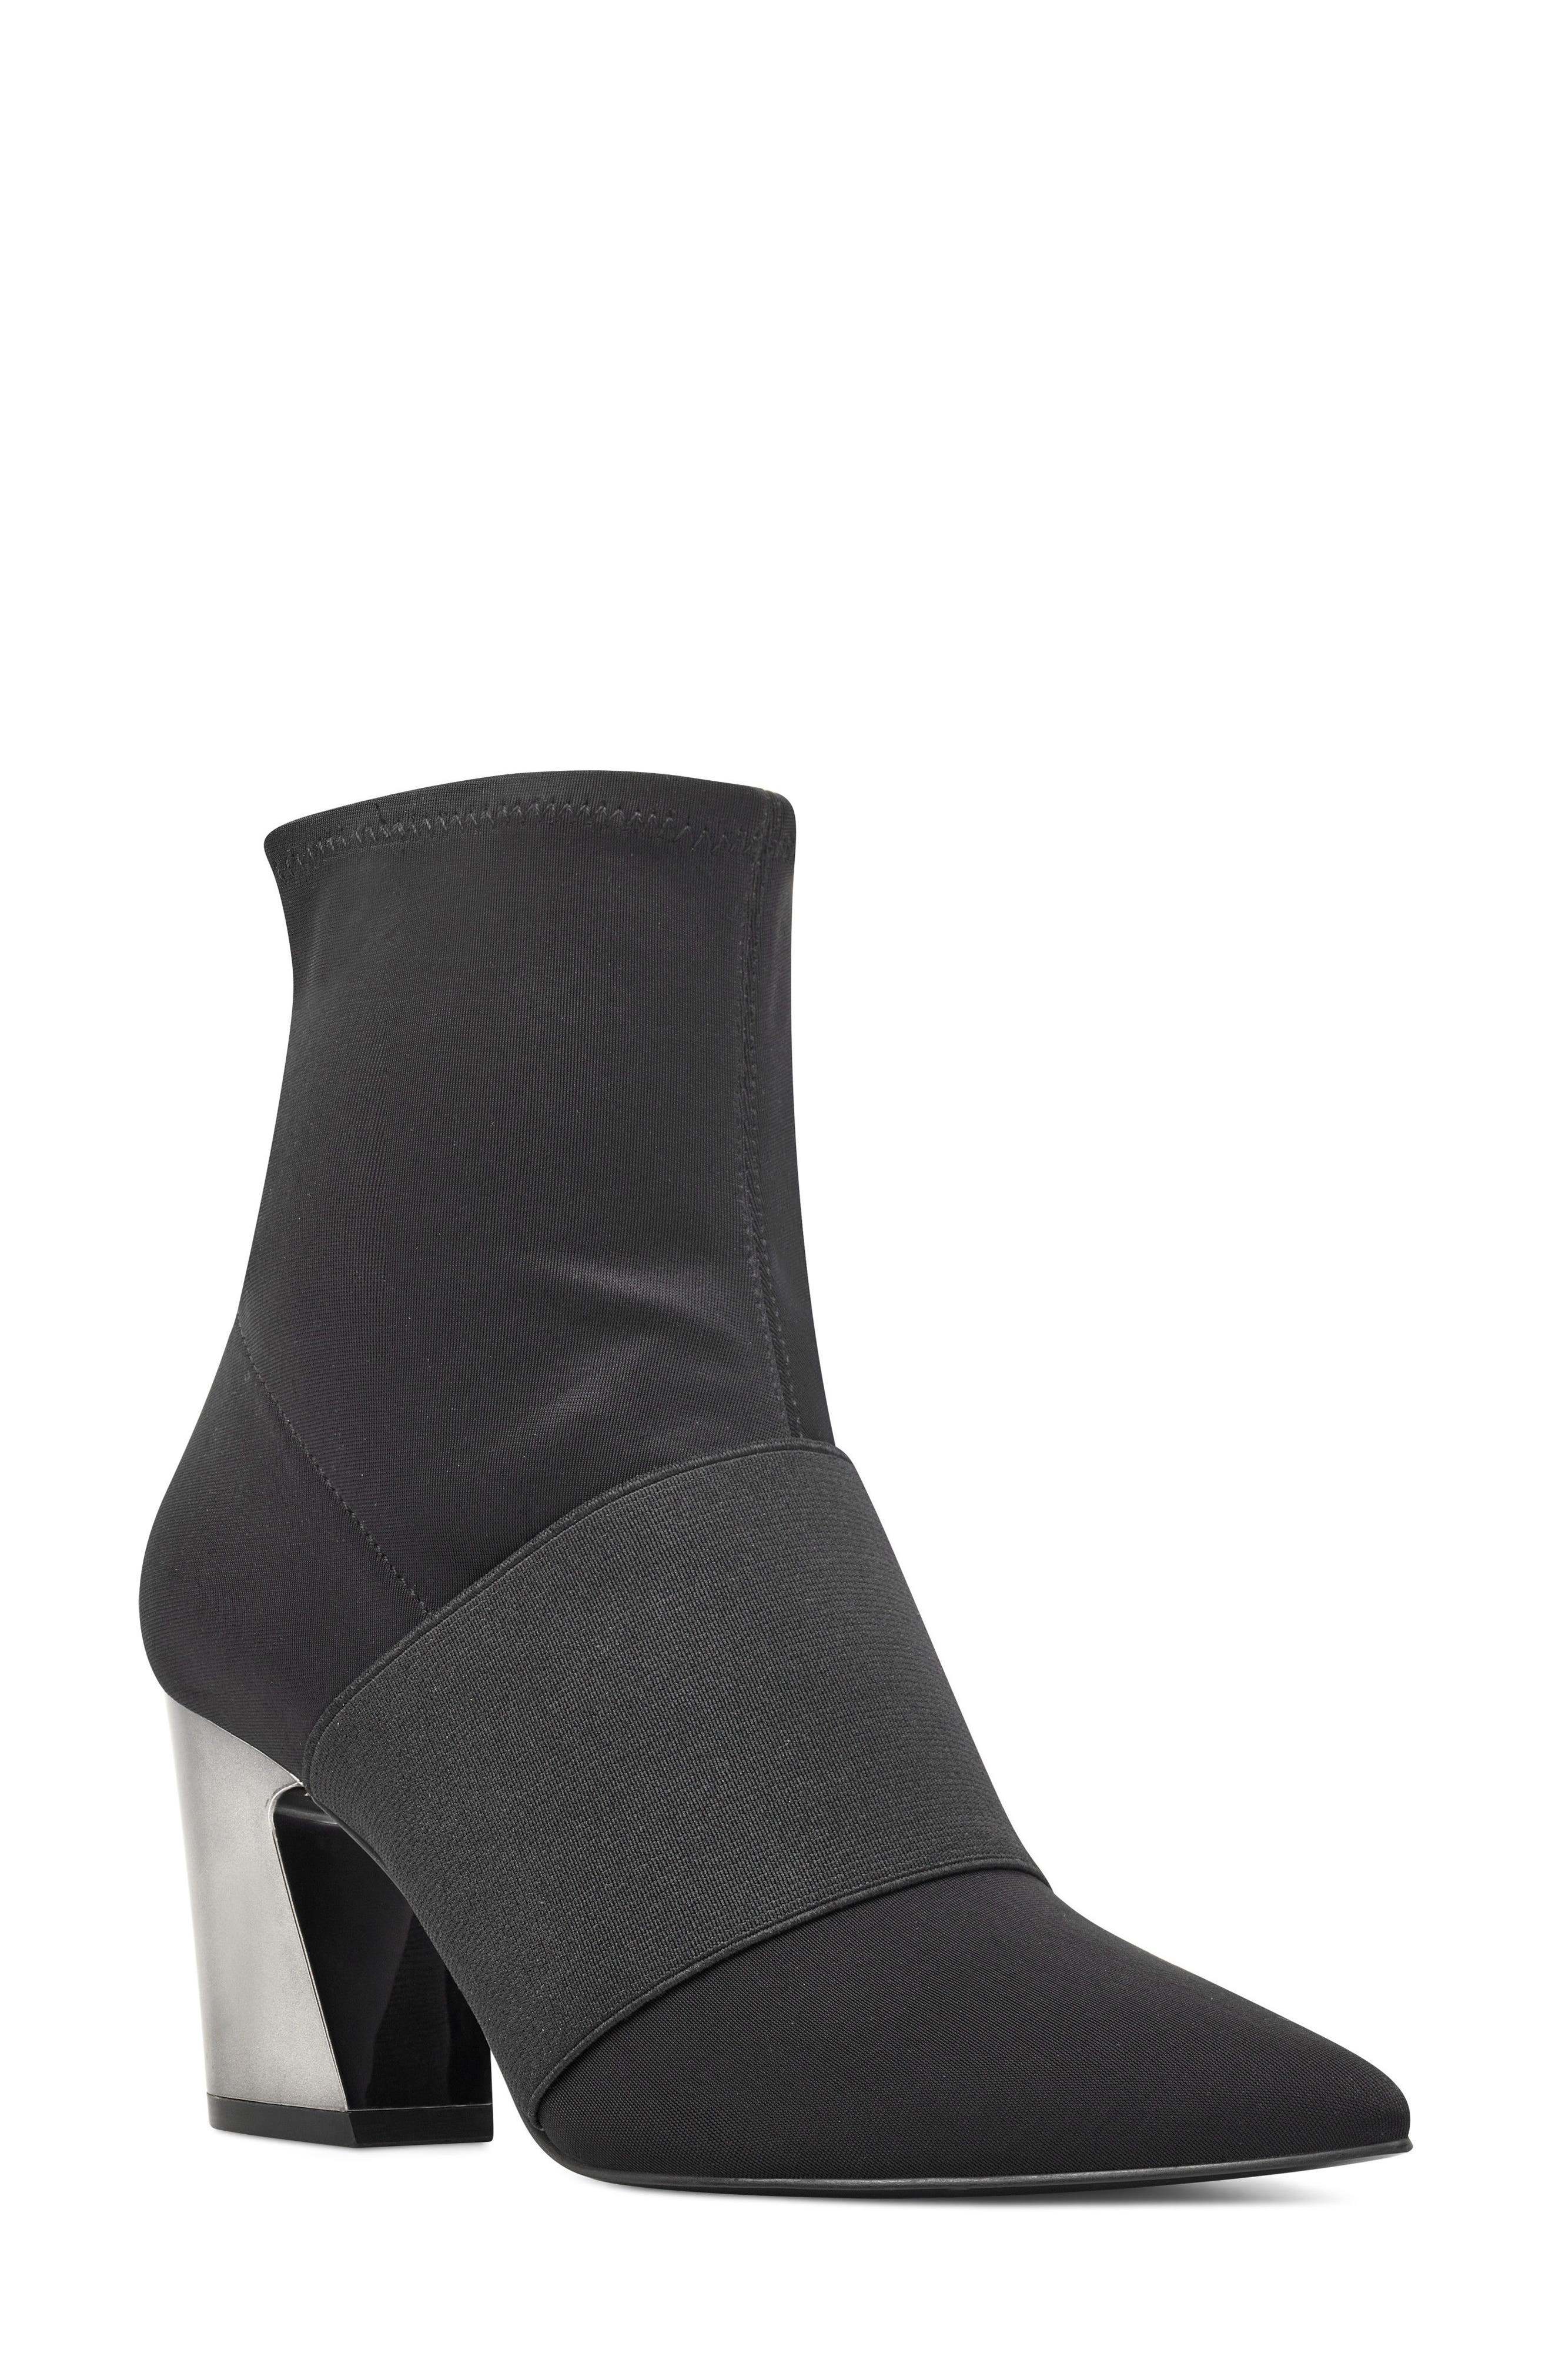 NINE WEST, Delayna Boot, Main thumbnail 1, color, 001